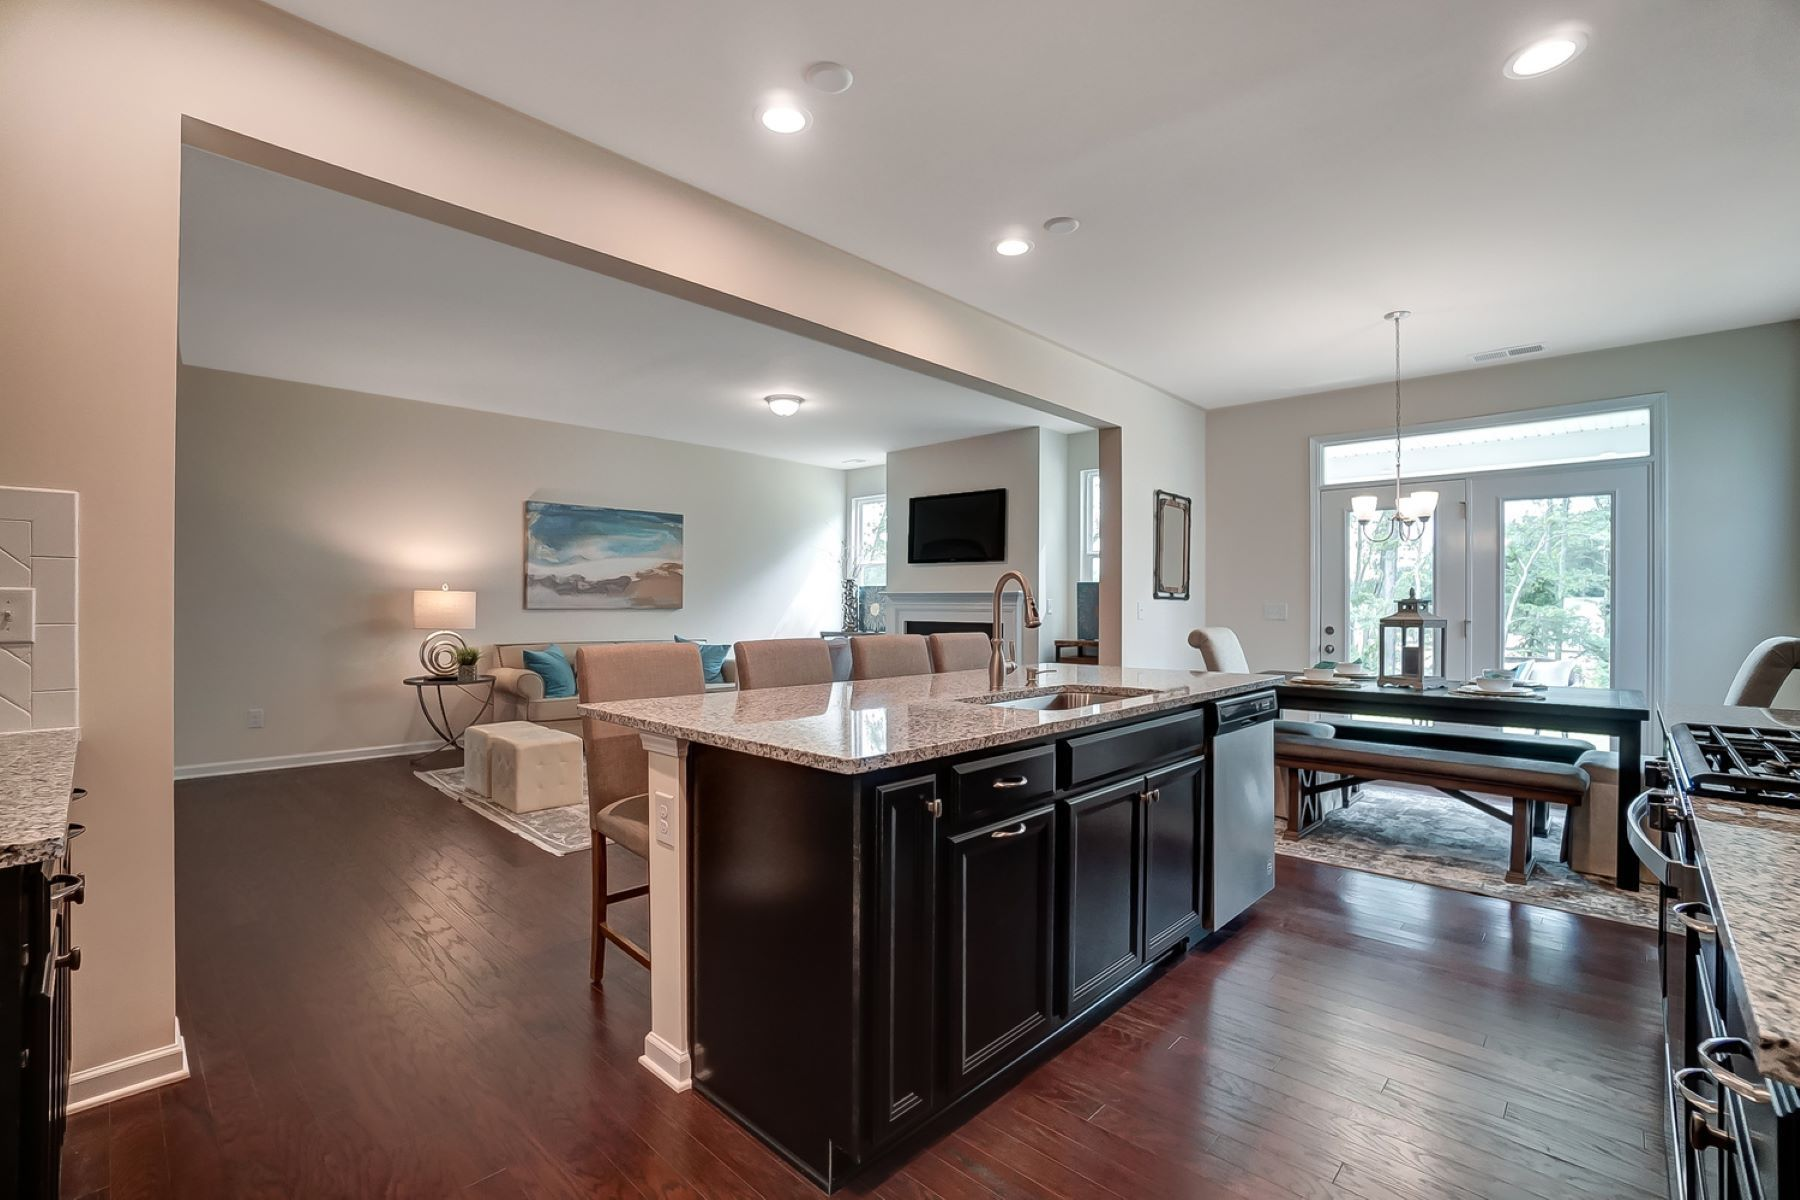 Kitchen featured in the Nolan By Mattamy Homes in Charlotte, NC